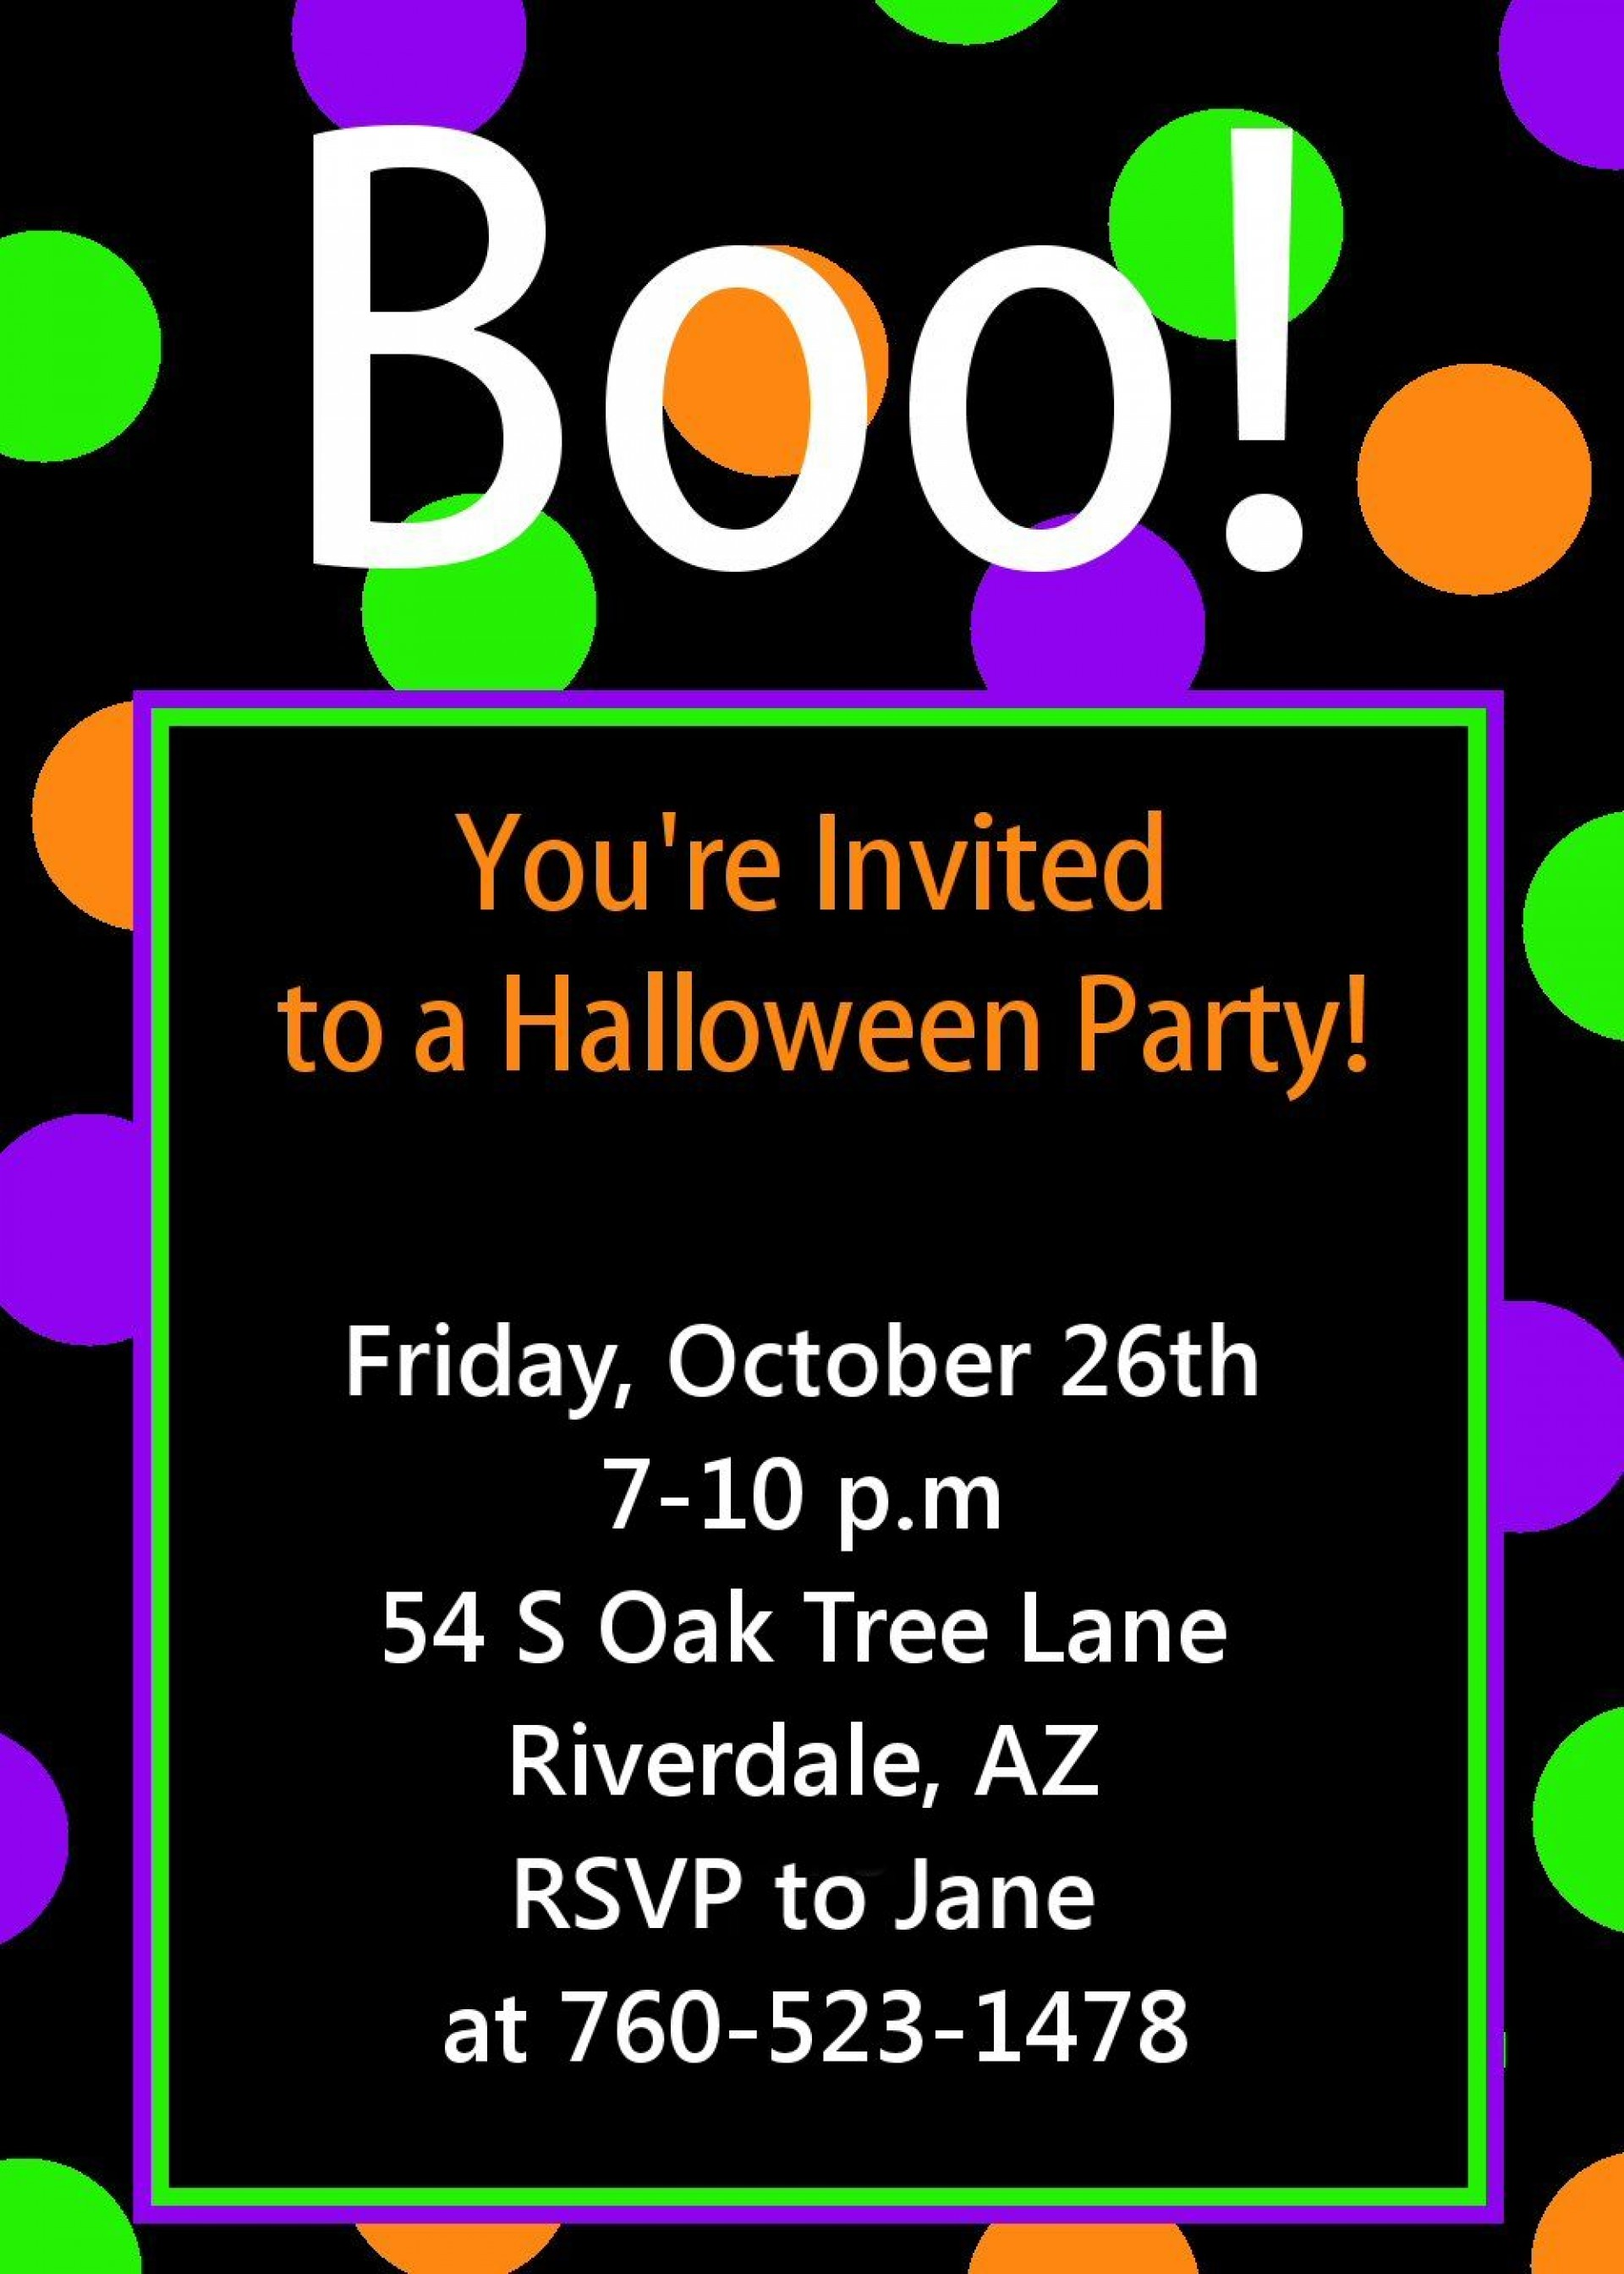 009 Awful Free Halloween Party Invitation Template Picture  Printable Birthday For Word Download1920